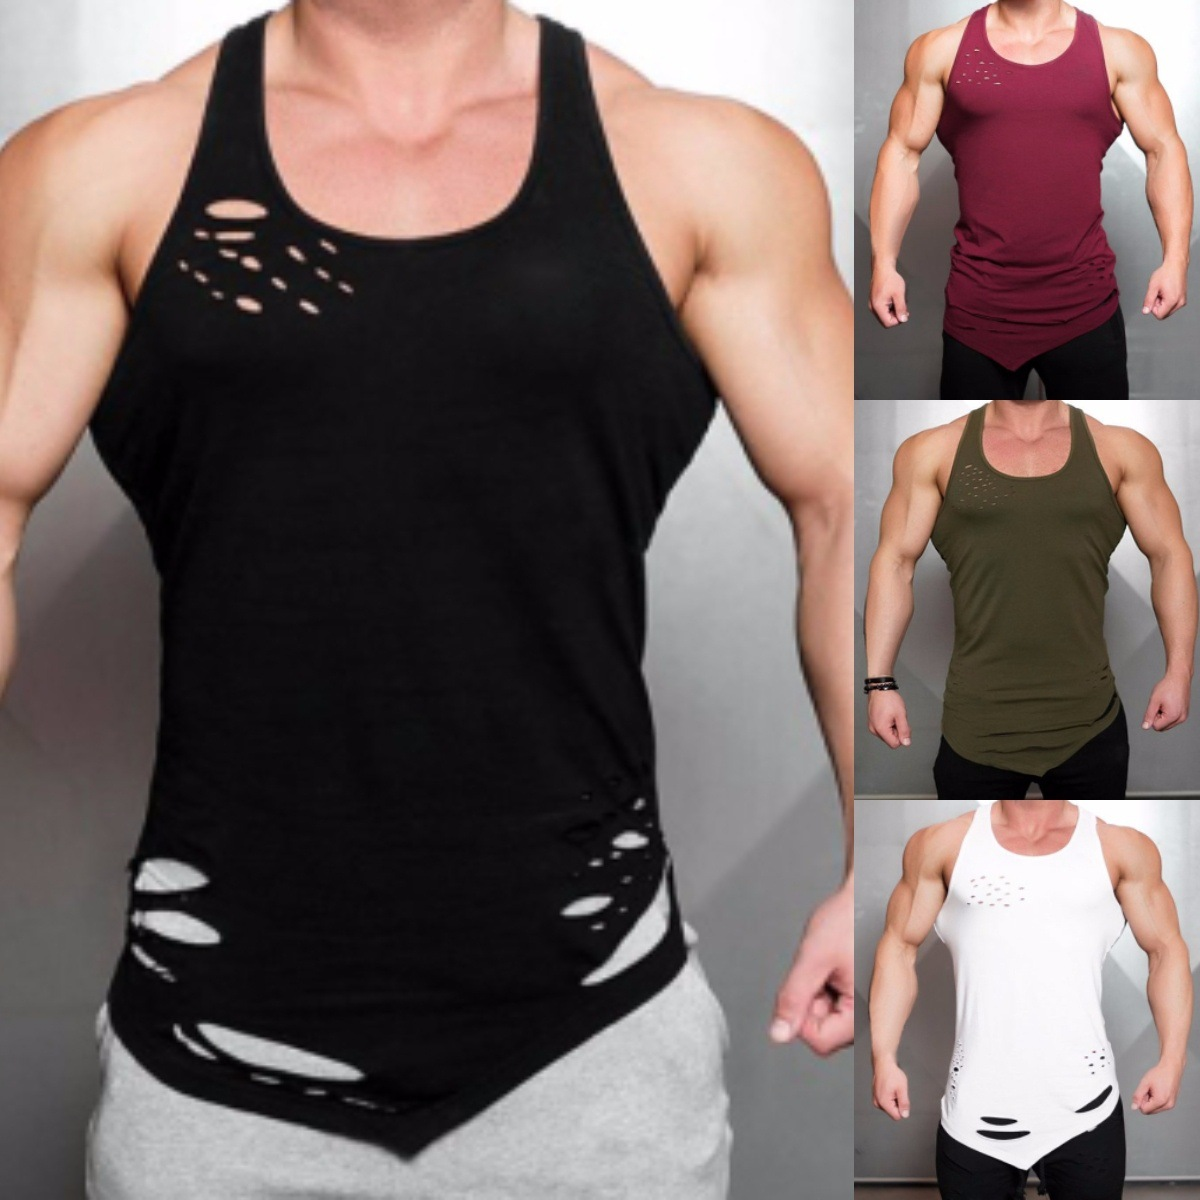 Summer 2019 Men's Gym clothing Casual Square Collar   Tank     Top   Tees Fitness Vest Red White Black Singlet Men   Tank     Tops   Street Wear